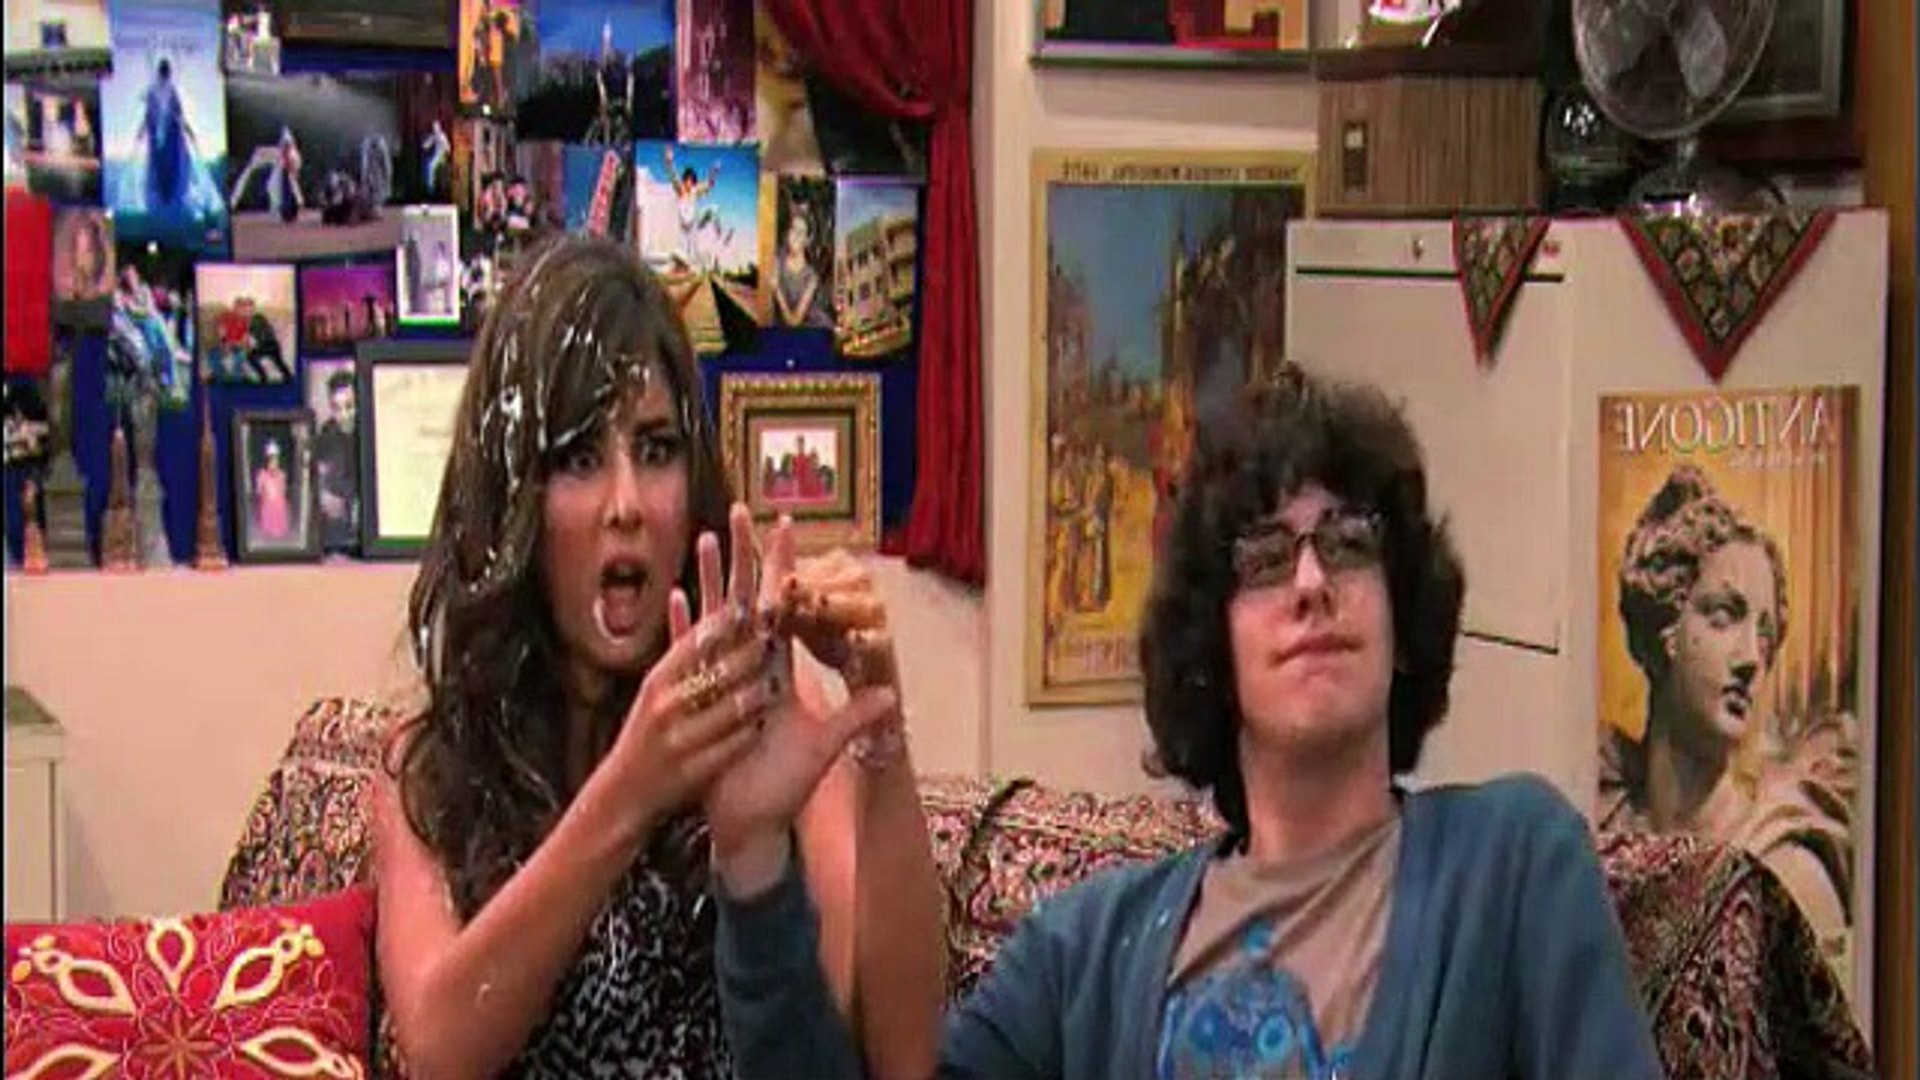 Victorious S01E17 The Wood